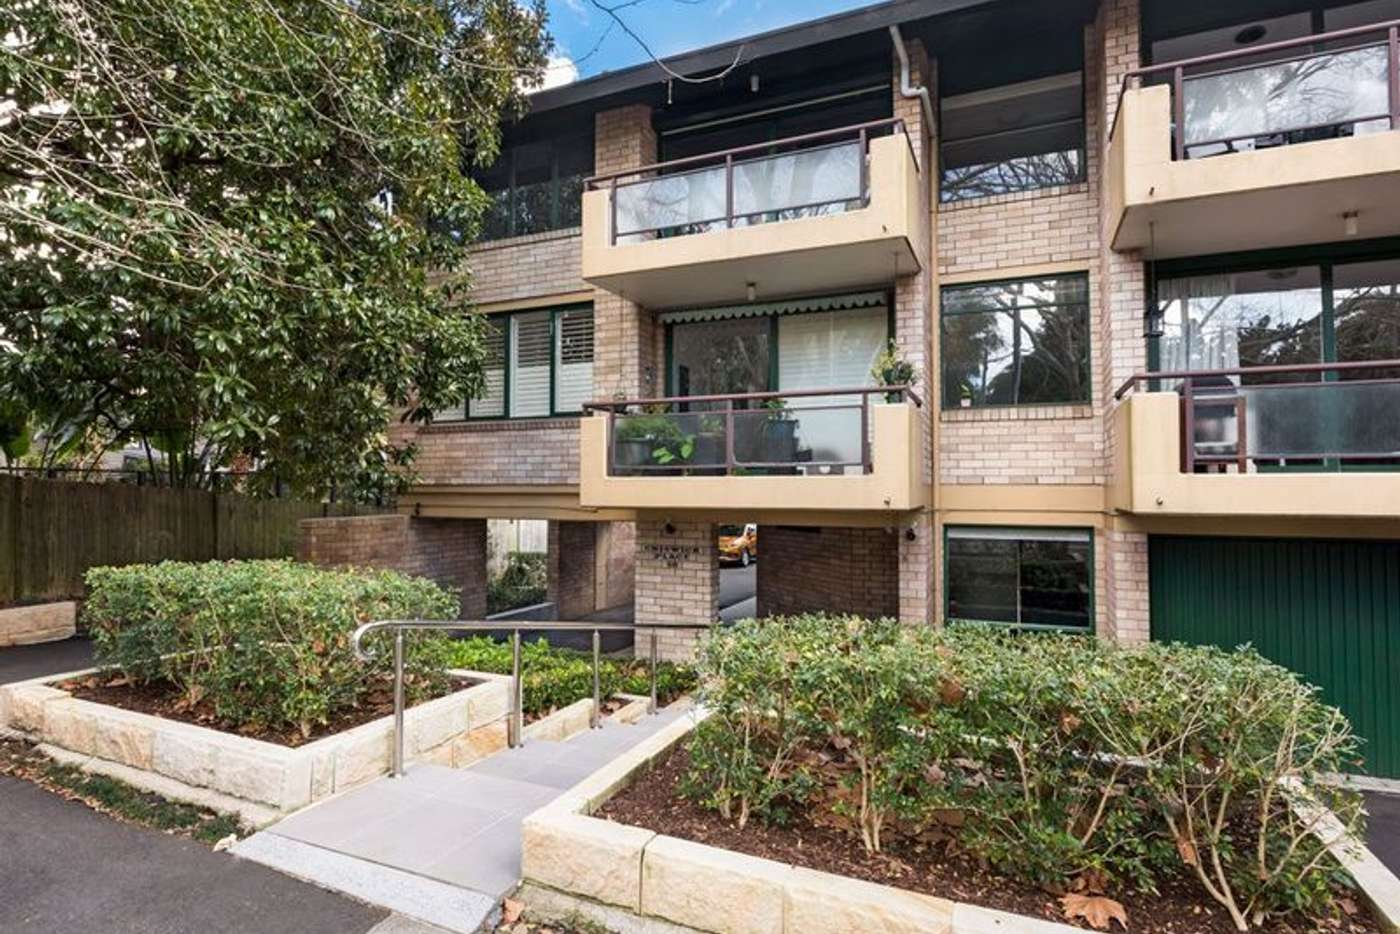 Main view of Homely apartment listing, 13/58 Ocean Street, Woollahra NSW 2025